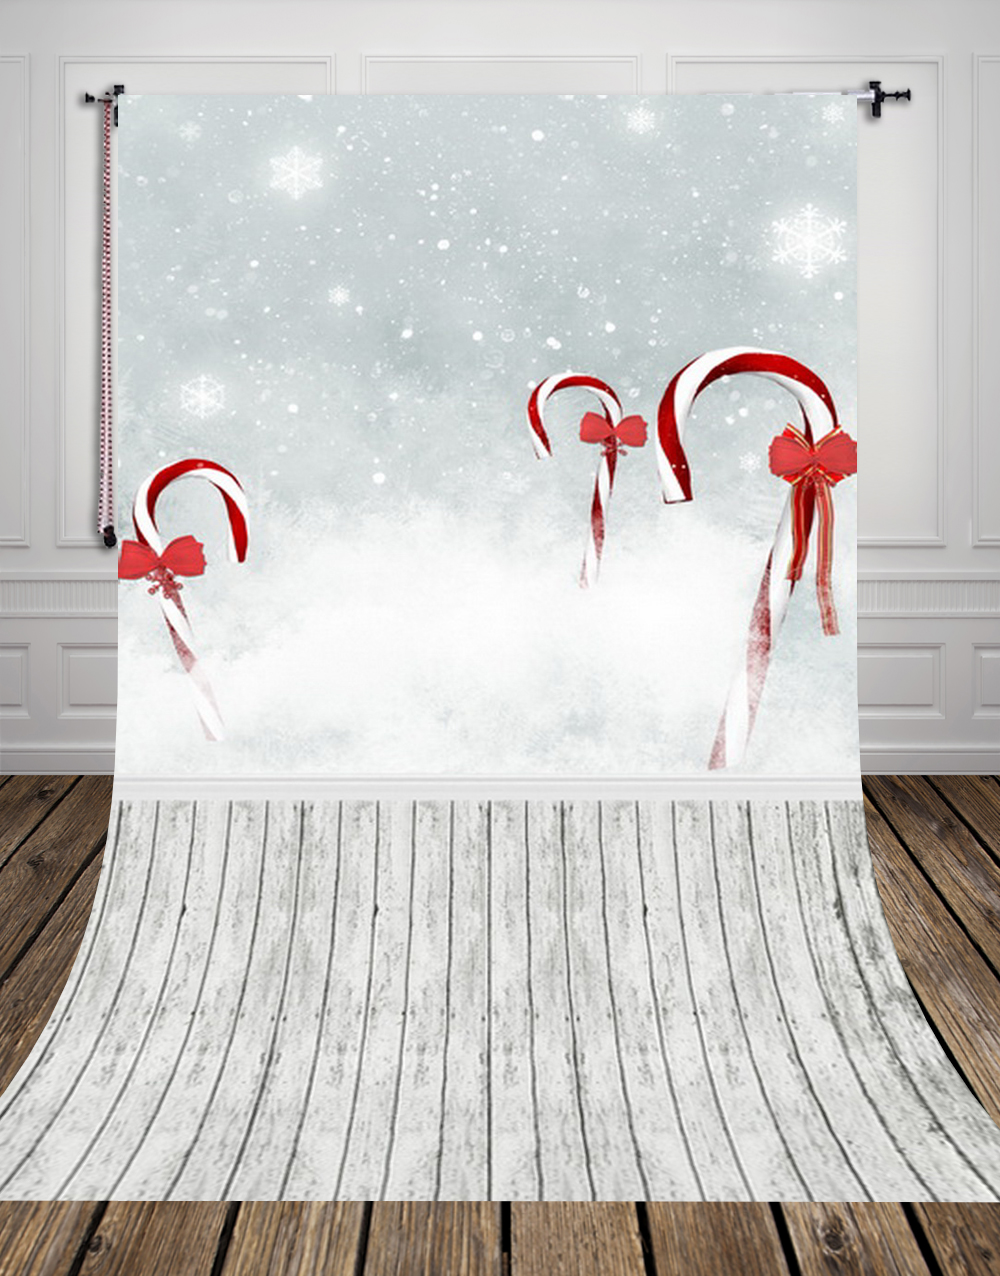 huayi photography backdrop christmas backdrops photo prop christmas decoration art fabric backgrounds d8541